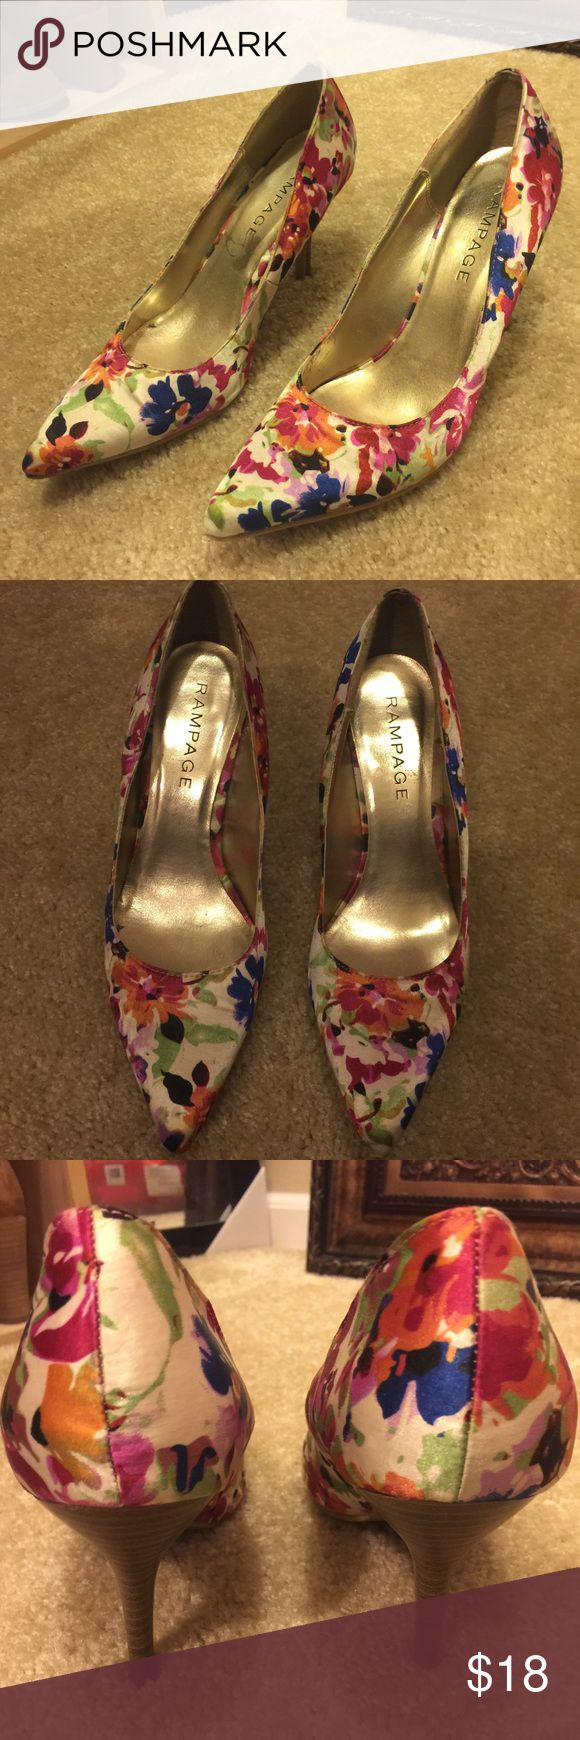 Rampage Floral Print Heels Size 10 Gorgeous shoes that can go with many outfits. Very pretty! Make an offer! Rampage Shoes Heels